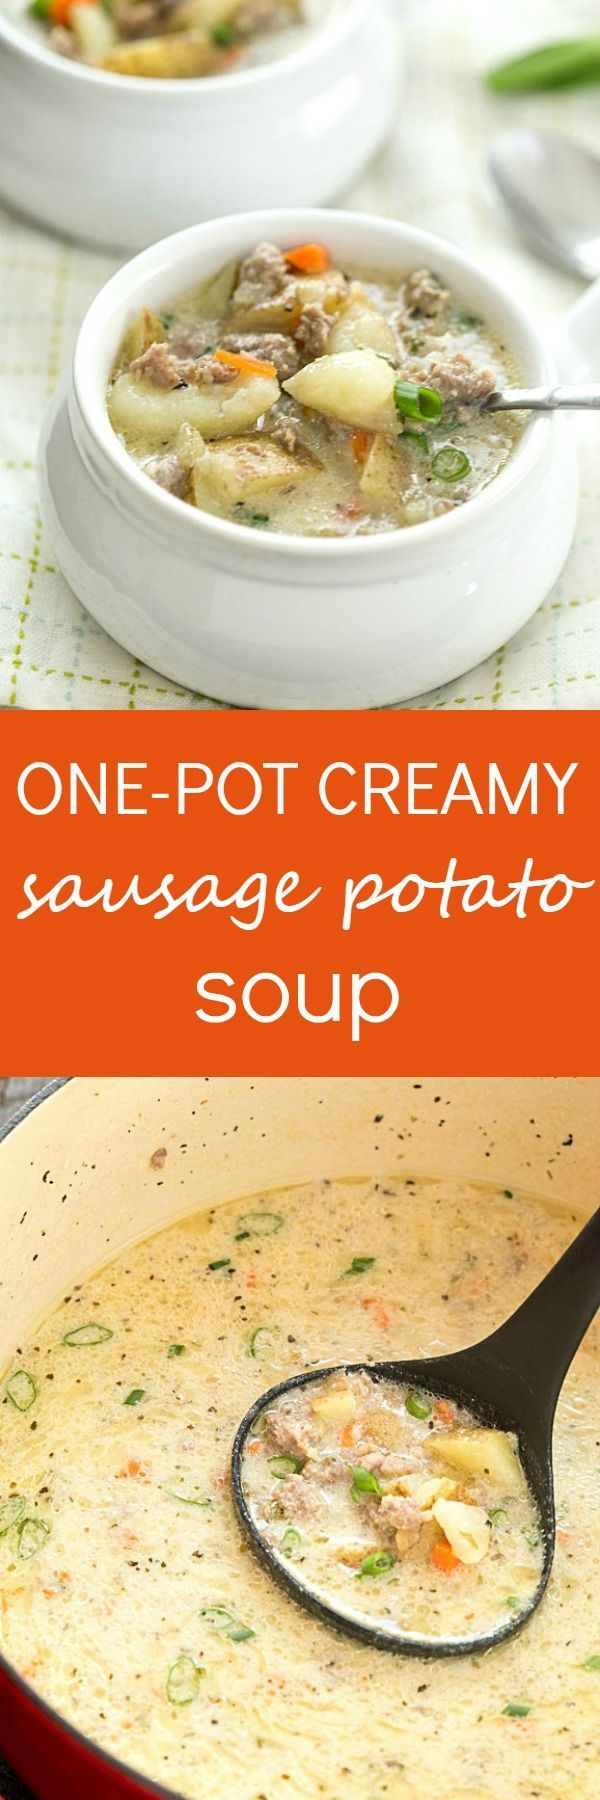 One-Pot Creamy Sausage and Potato Soup Recipe - So easy with hardly any prep, besides removing the casing from the sausage, with big flavor! Make it in the dutch oven or even in a crockpot. So creamy and not made with Velveeta!